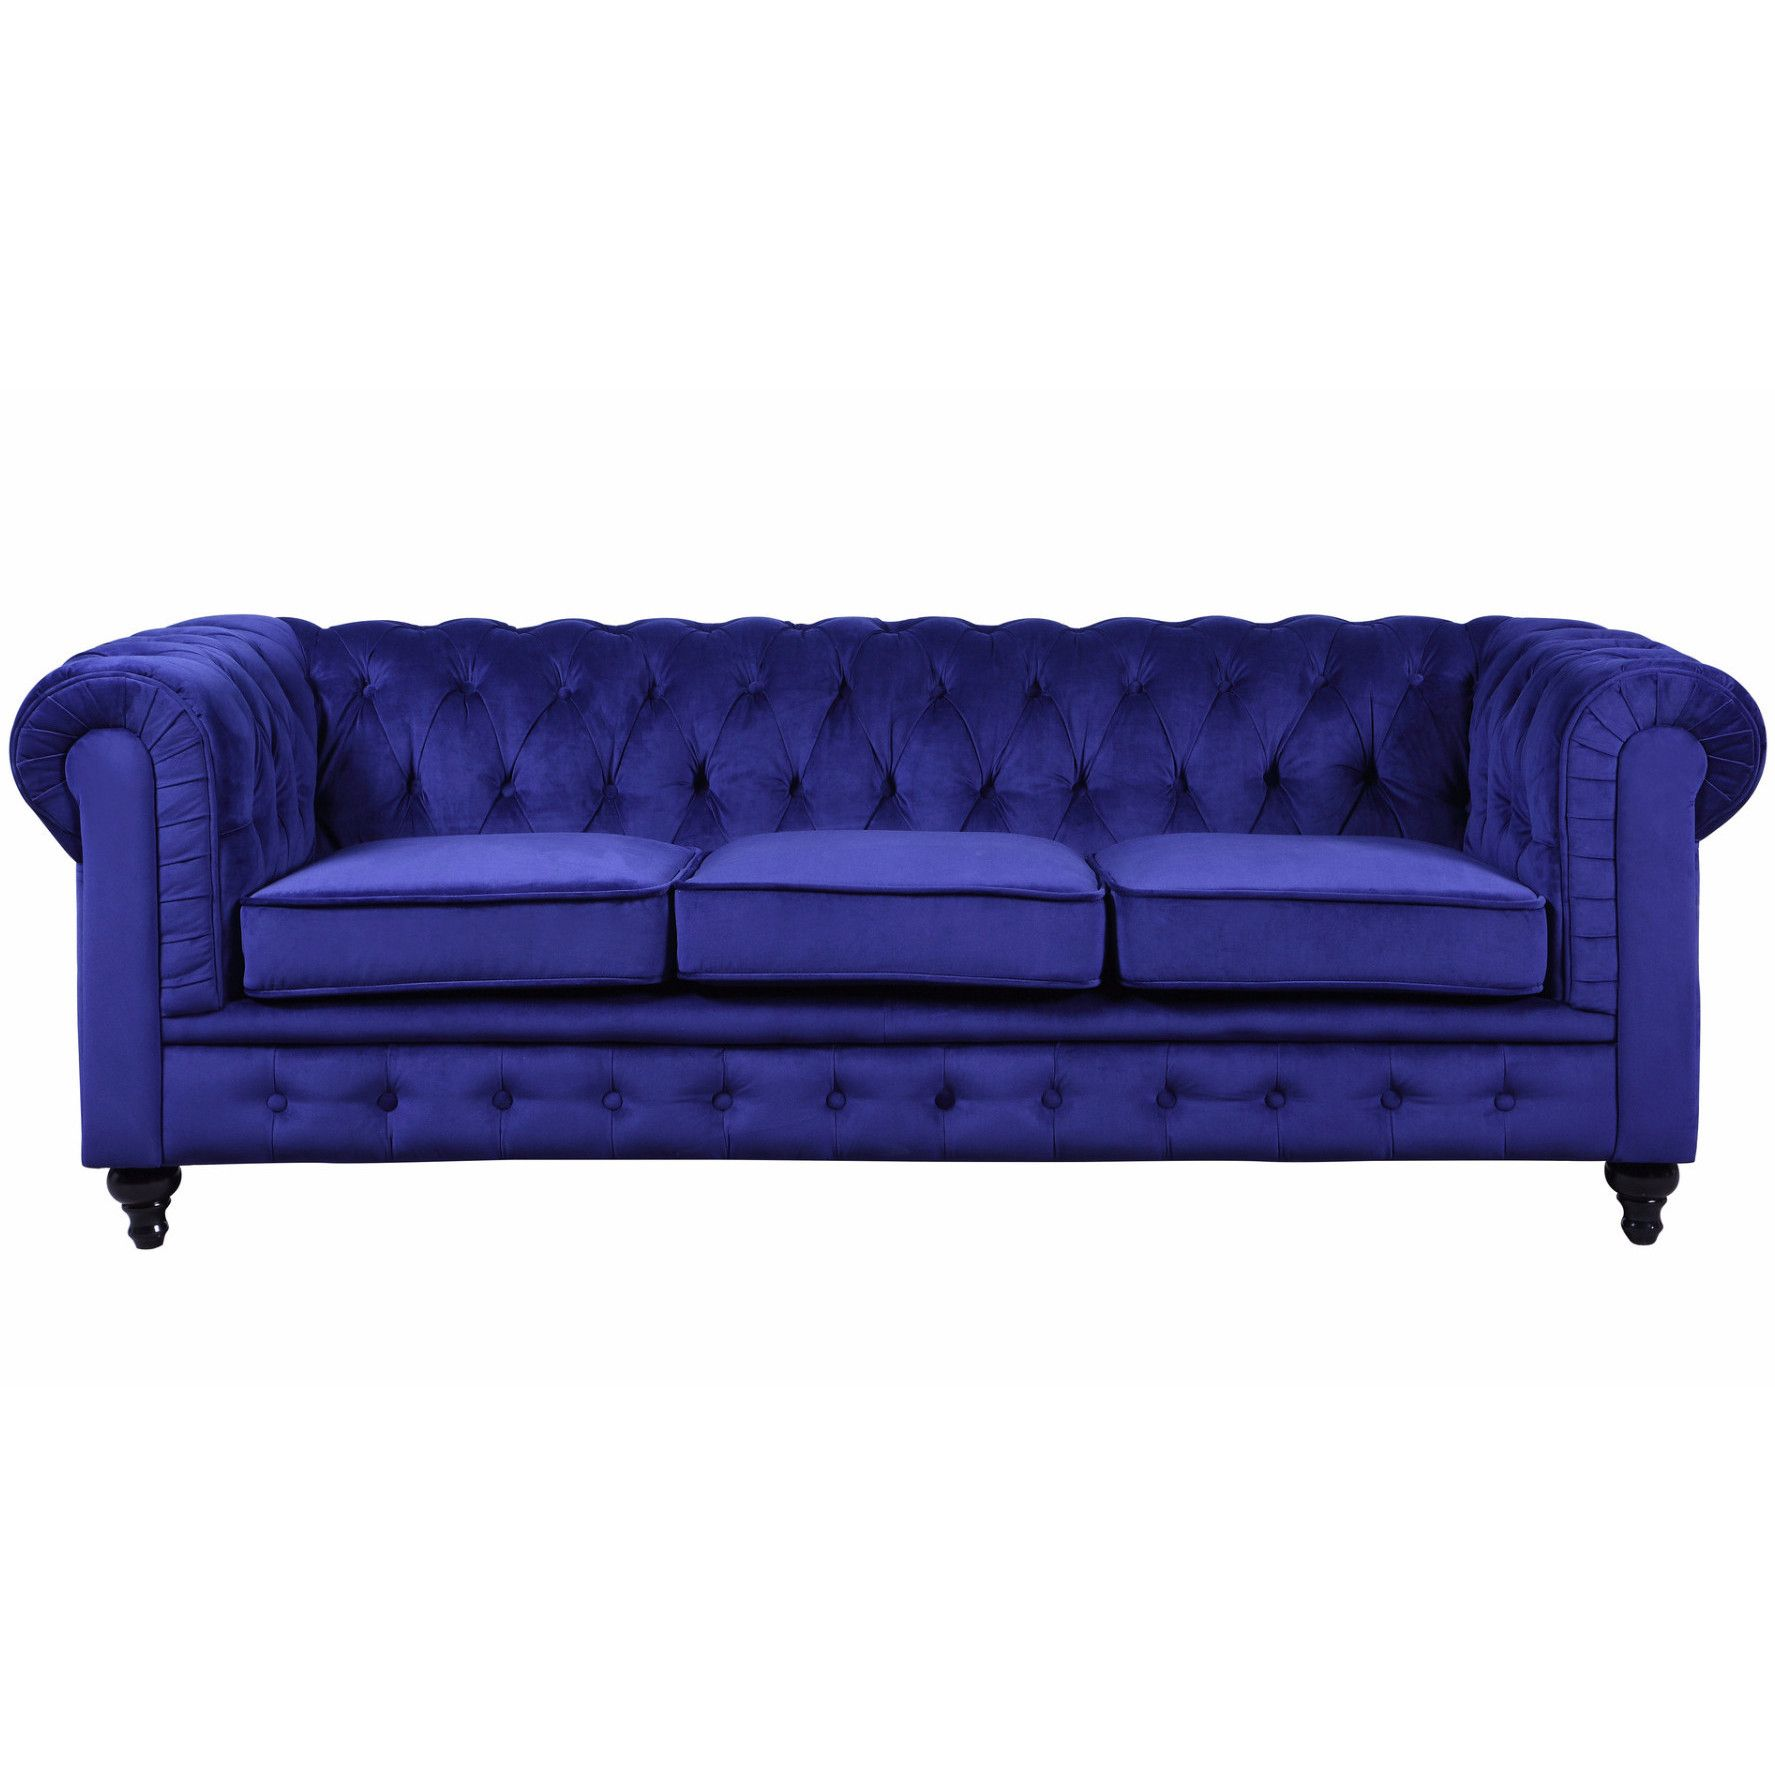 "Edith 87"" Chesterfield Sofa furniture Pinterest"